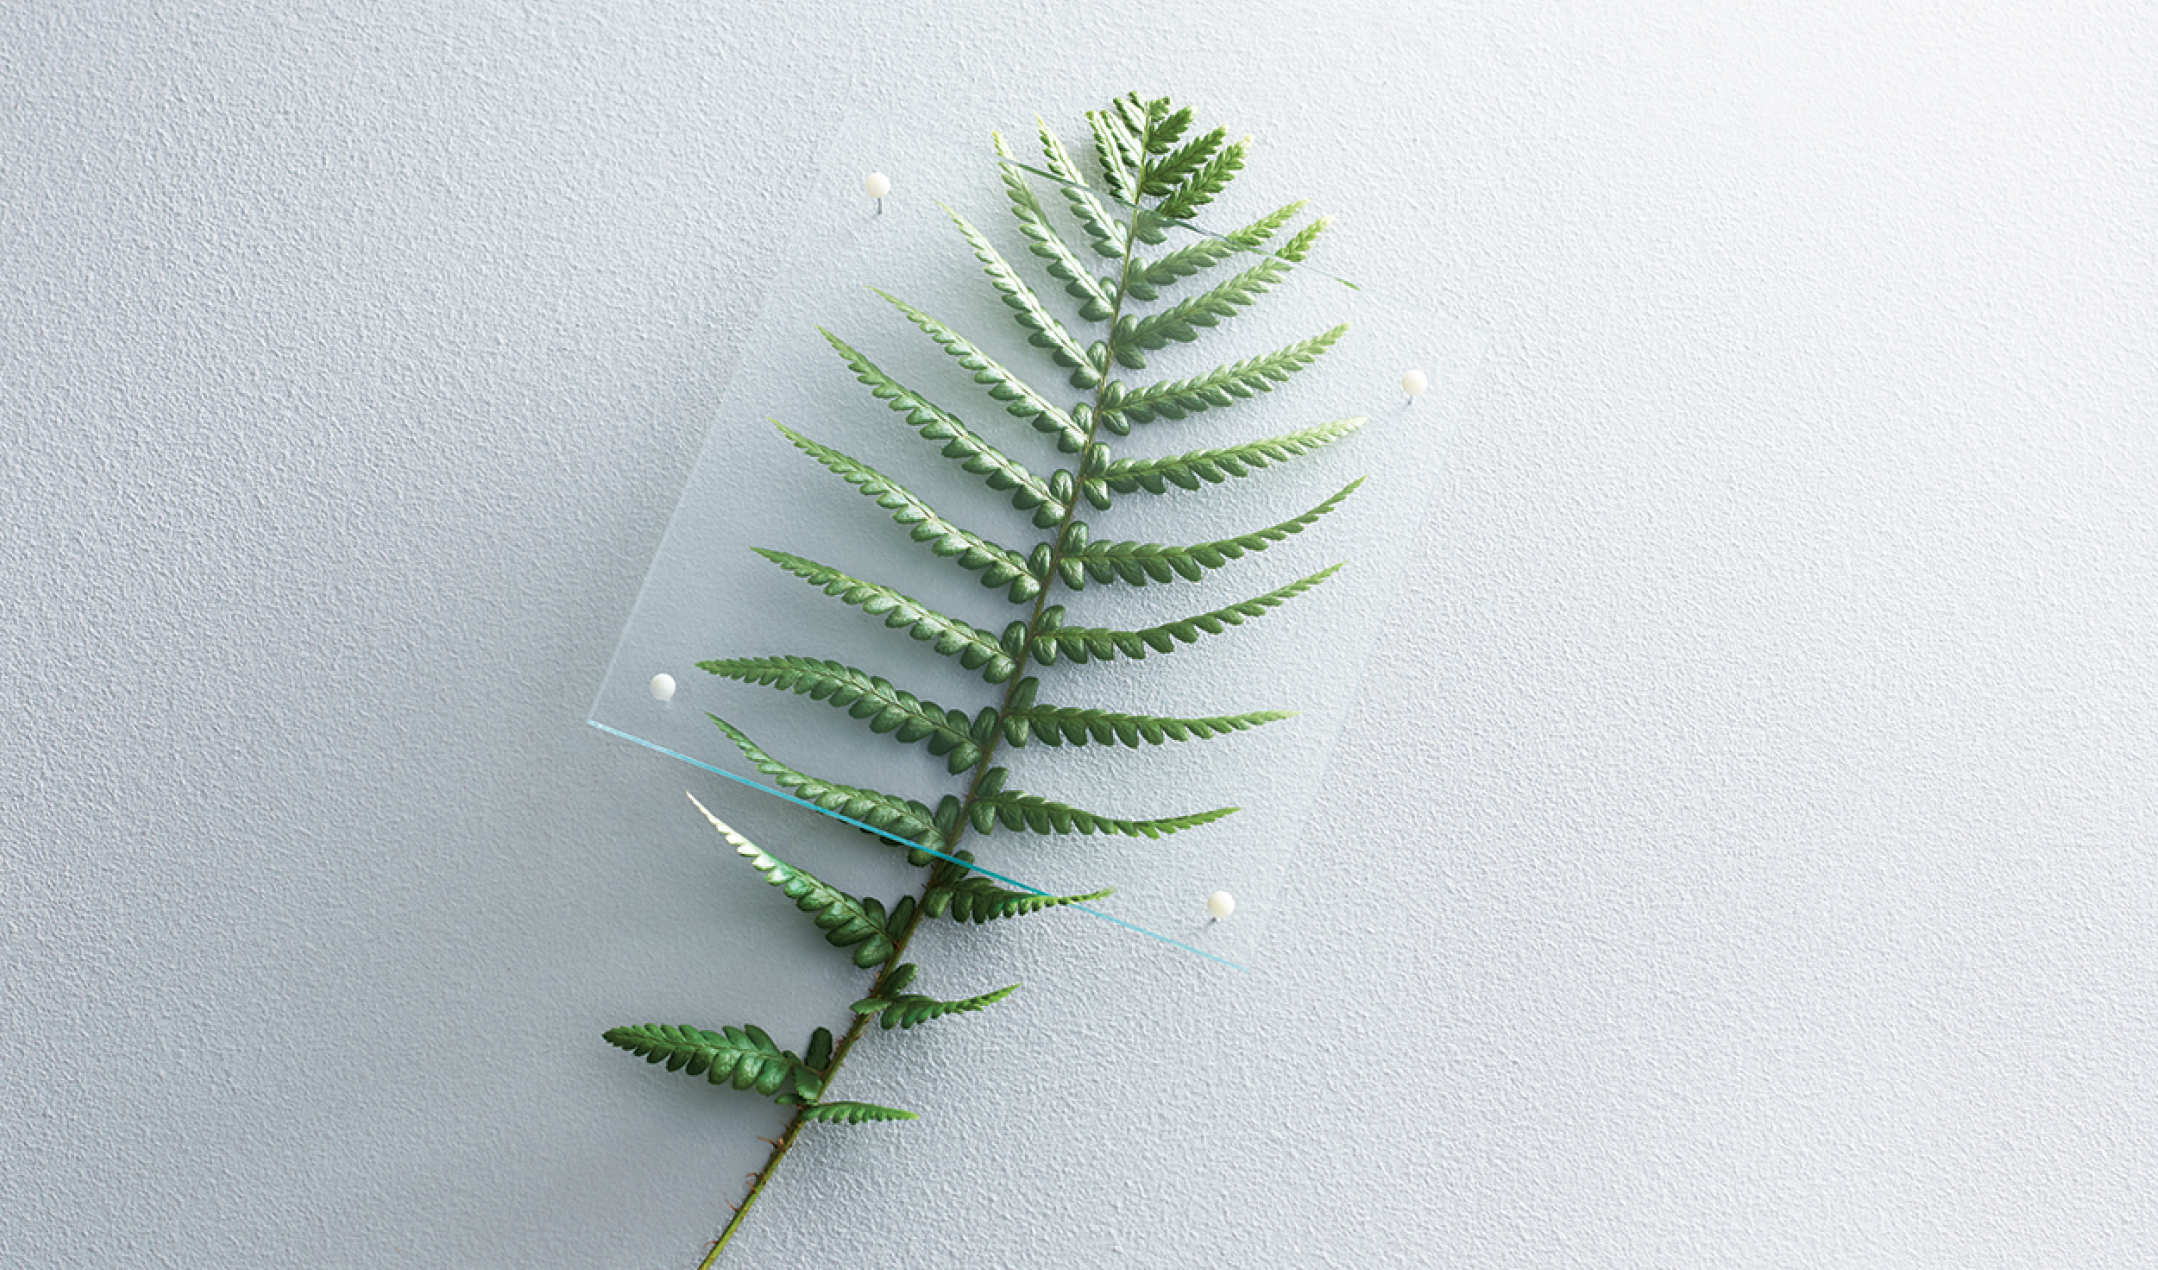 A frond from a fern under a piece of glass